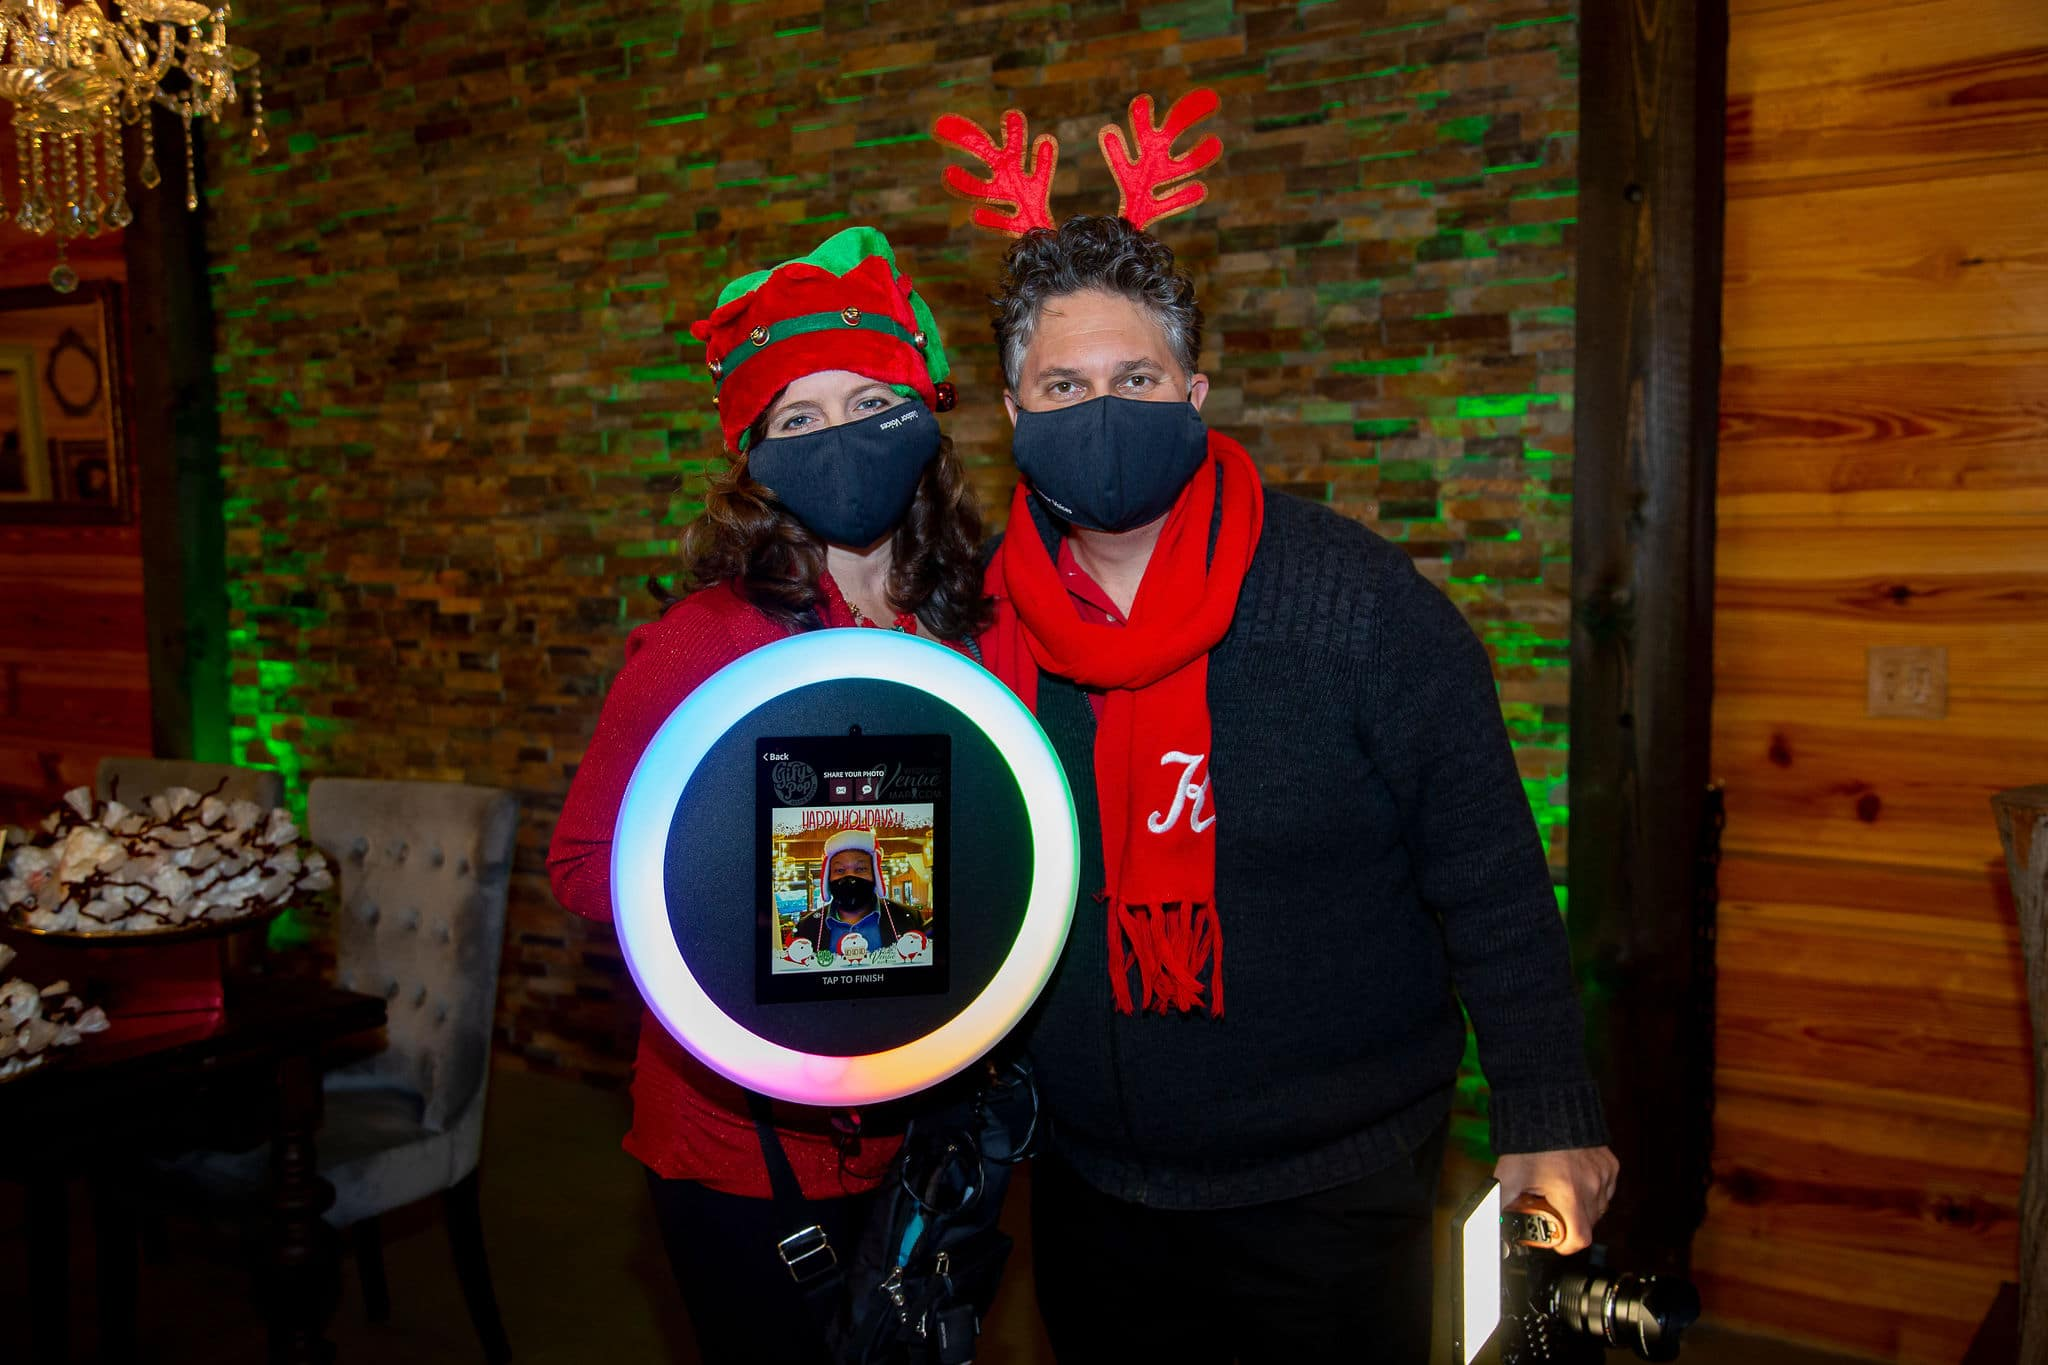 man and woman wearing festive hat and reindeer headband holding roaming photobooth machine and video camera